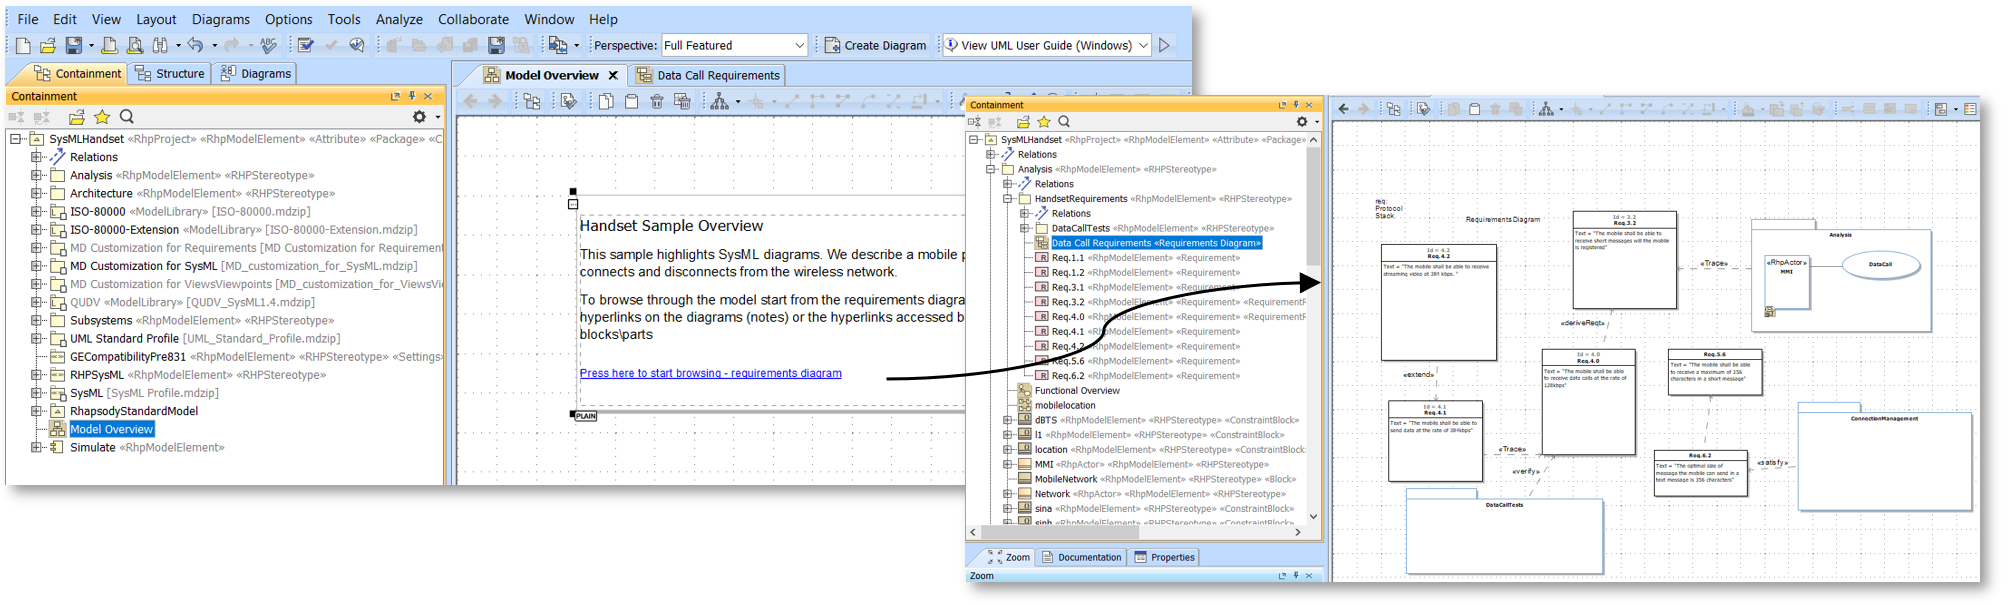 New Configuration Options_MagicDraw Publisher for Rhapsody_Sodius_2